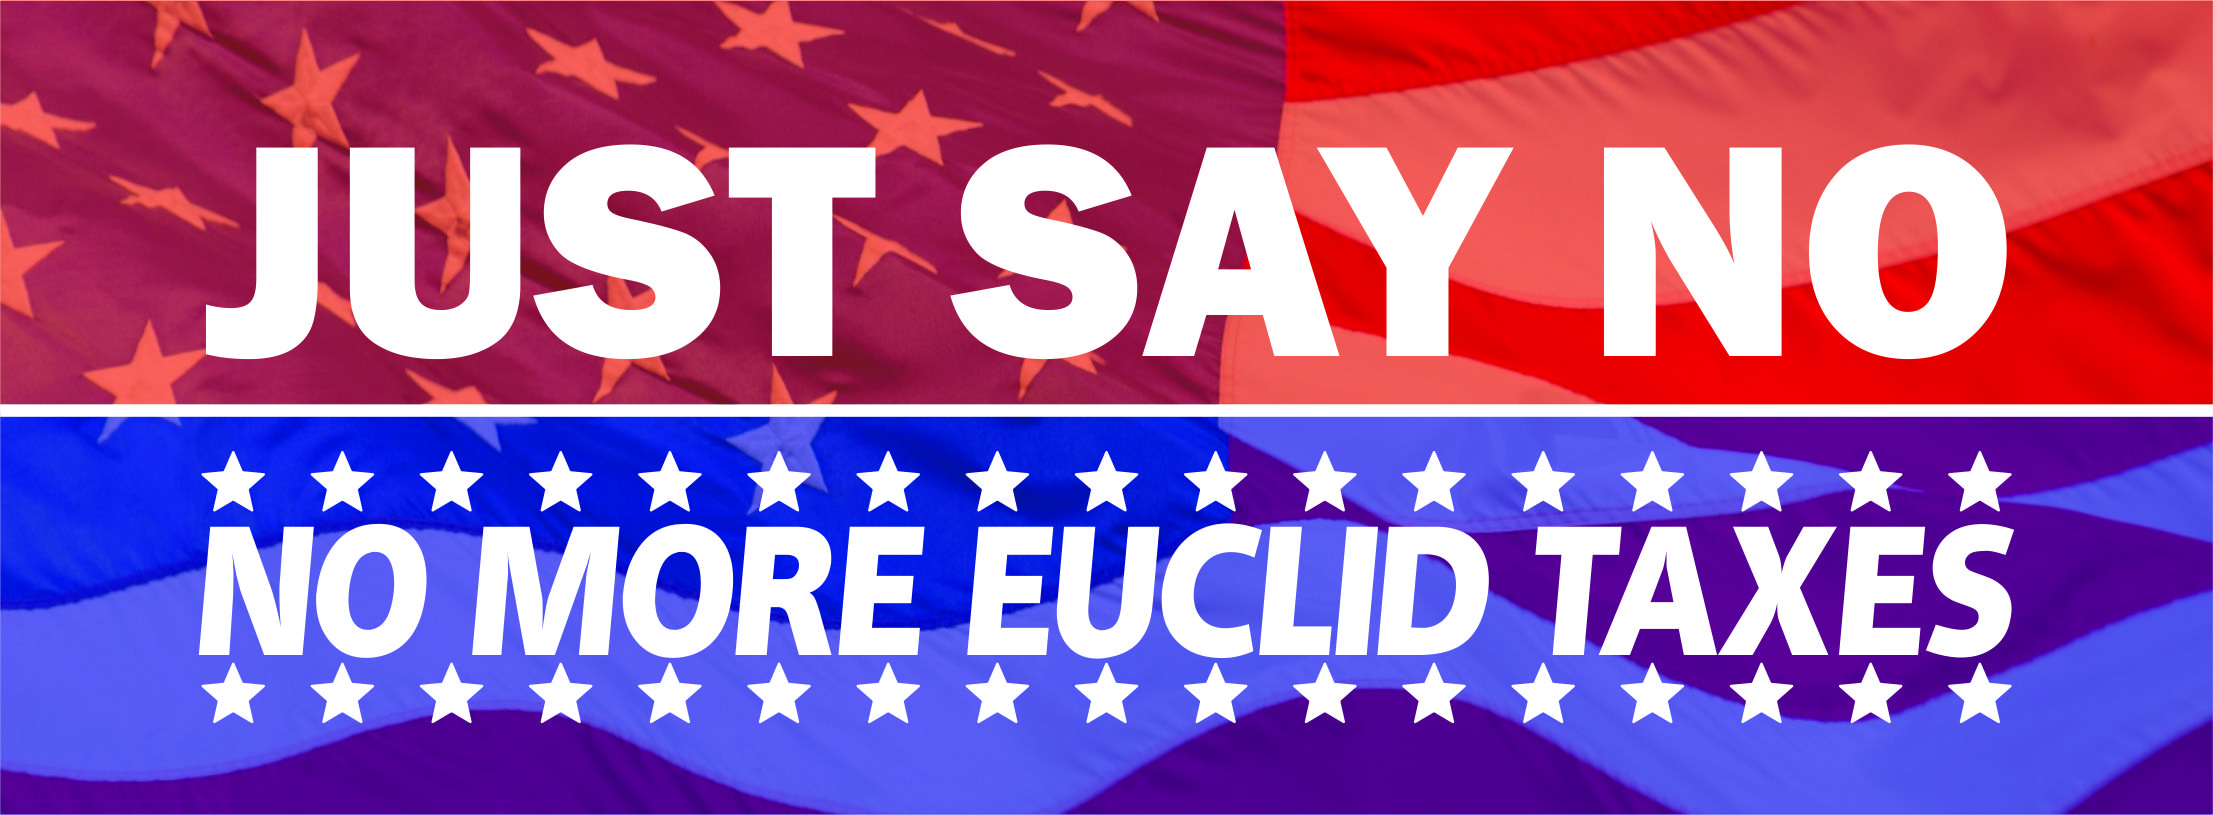 Euclid Ohio GOP